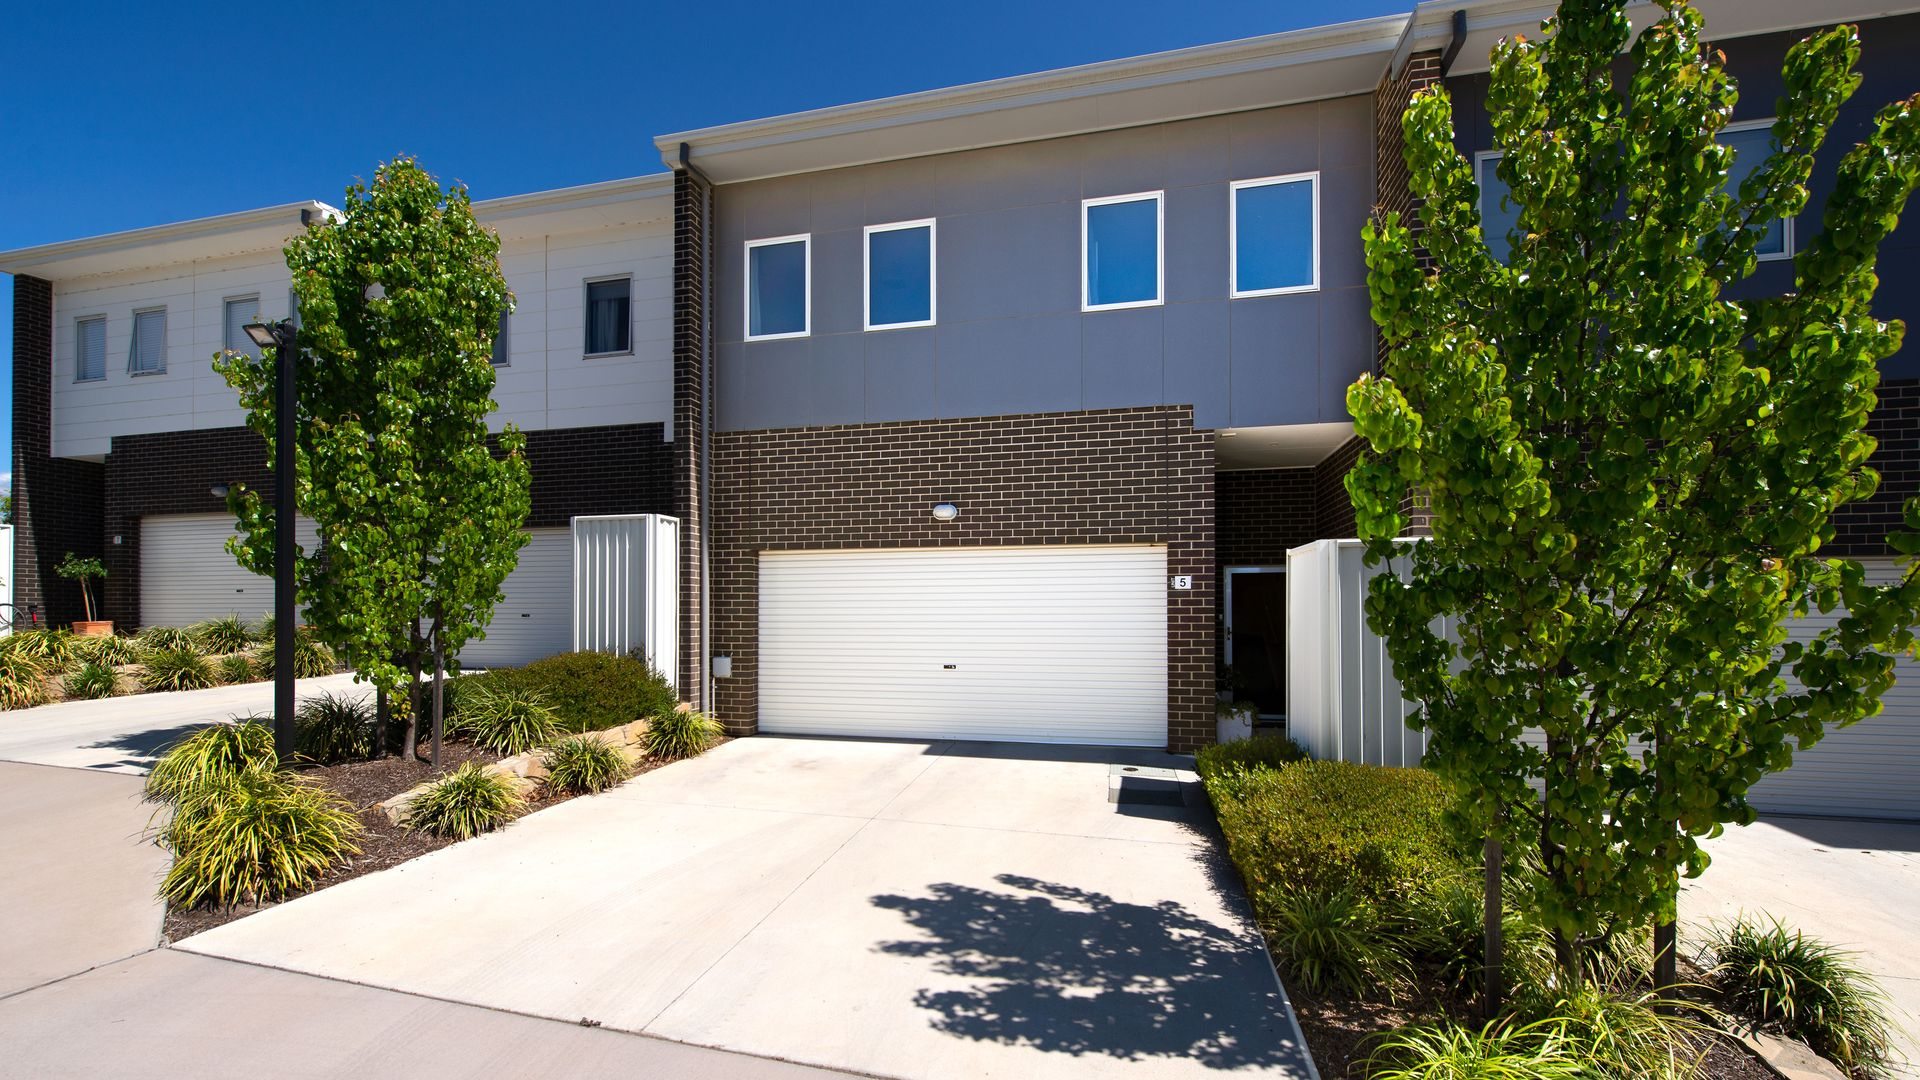 5/2 Ken Tribe Street, Coombs ACT 2611, Image 0